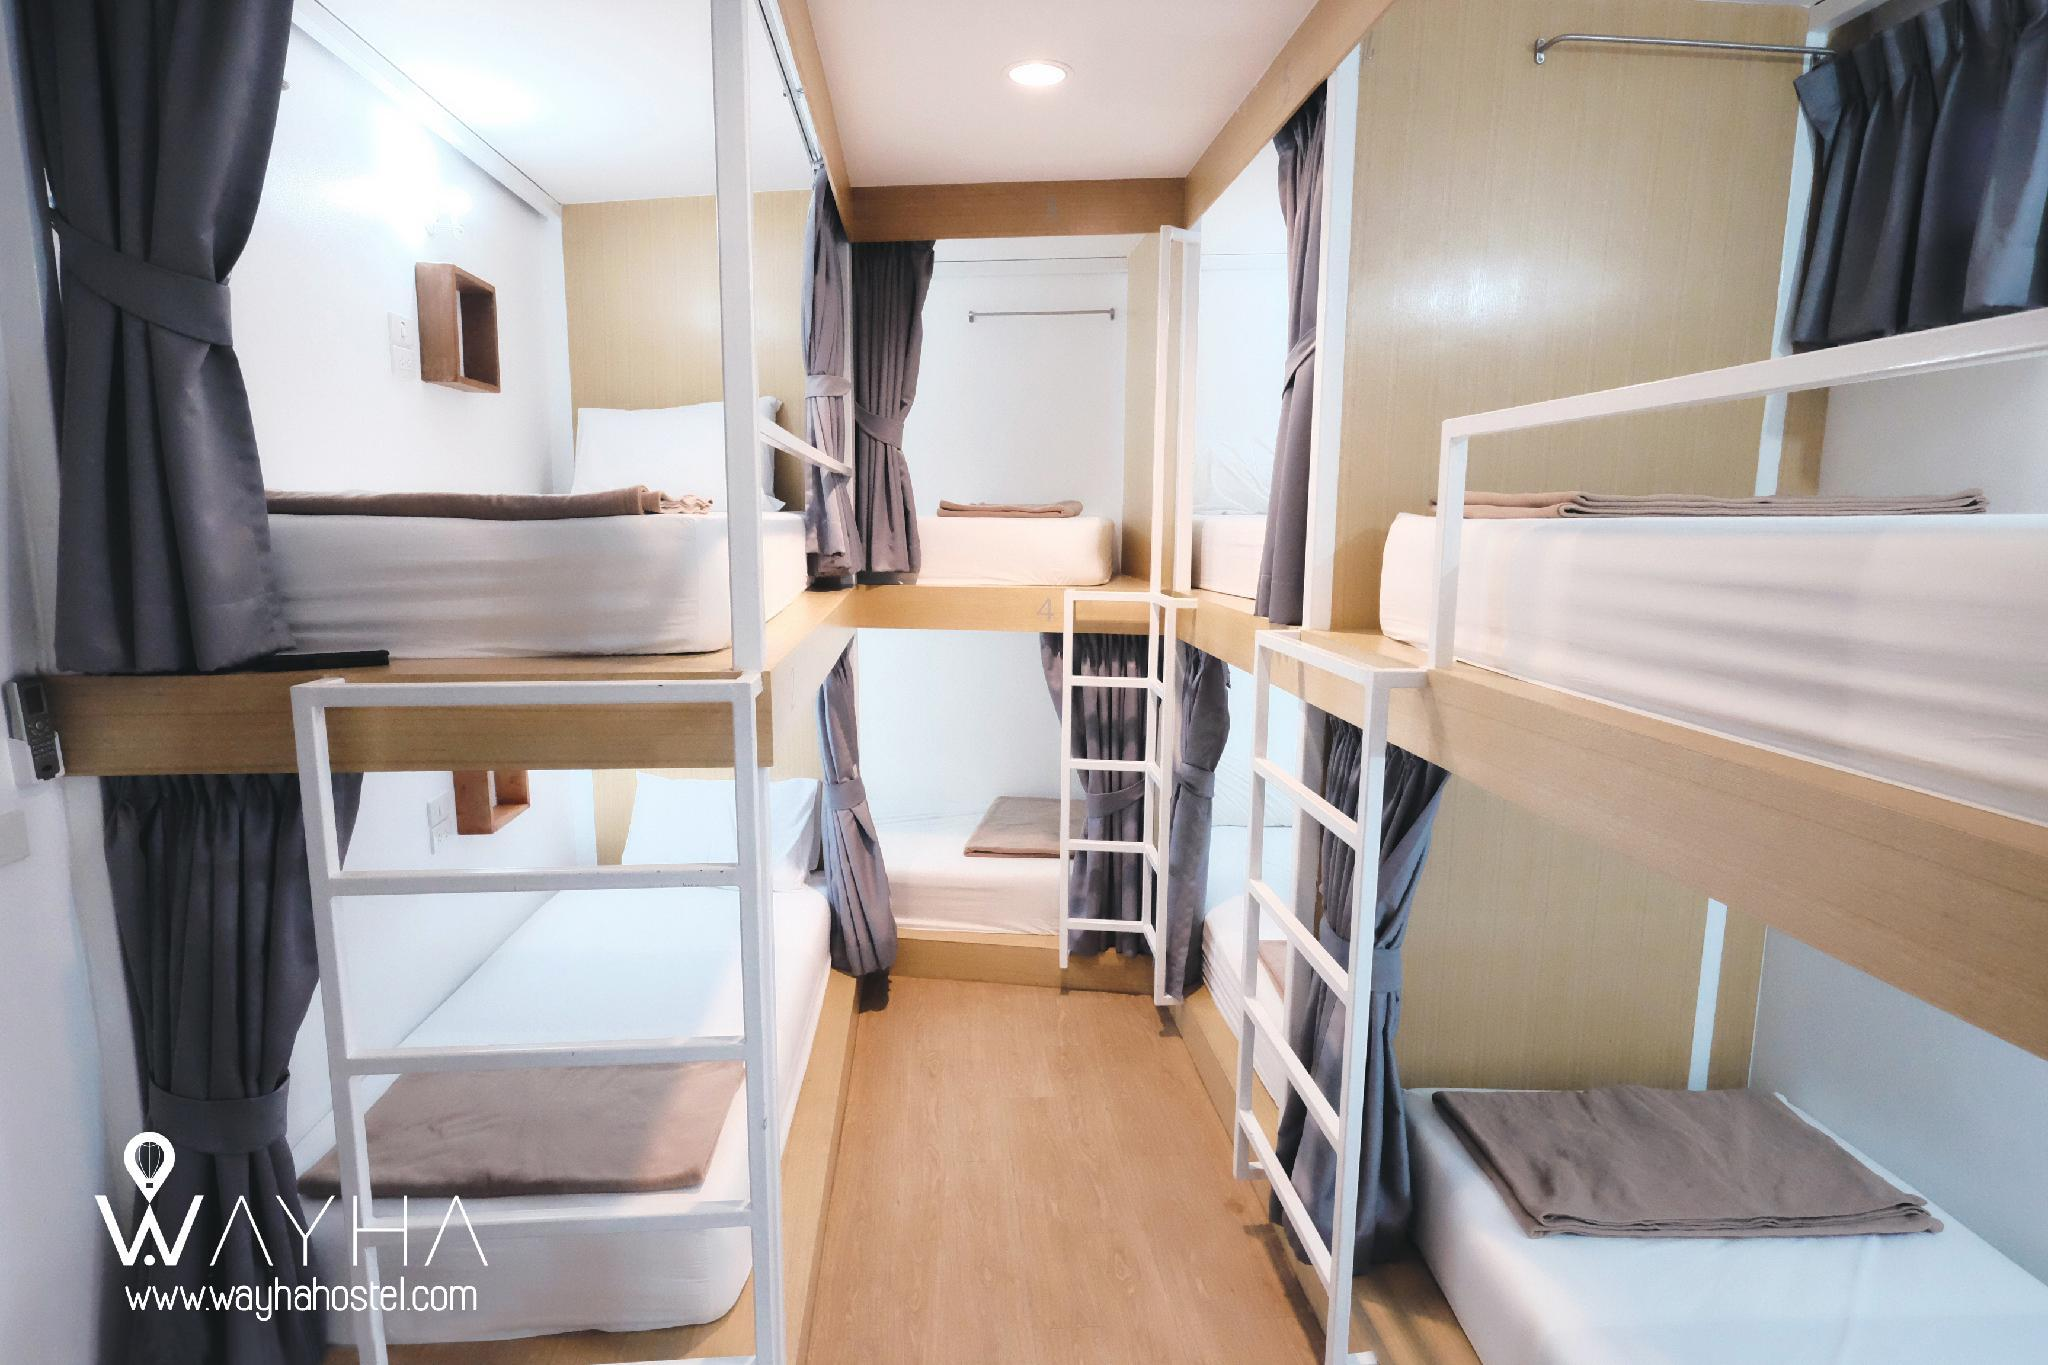 1 person i 8-sengs Sovesal med aircondition - Blandet (1 Person in 8-Bed Dormitory with Air Conditioning - Mixed)